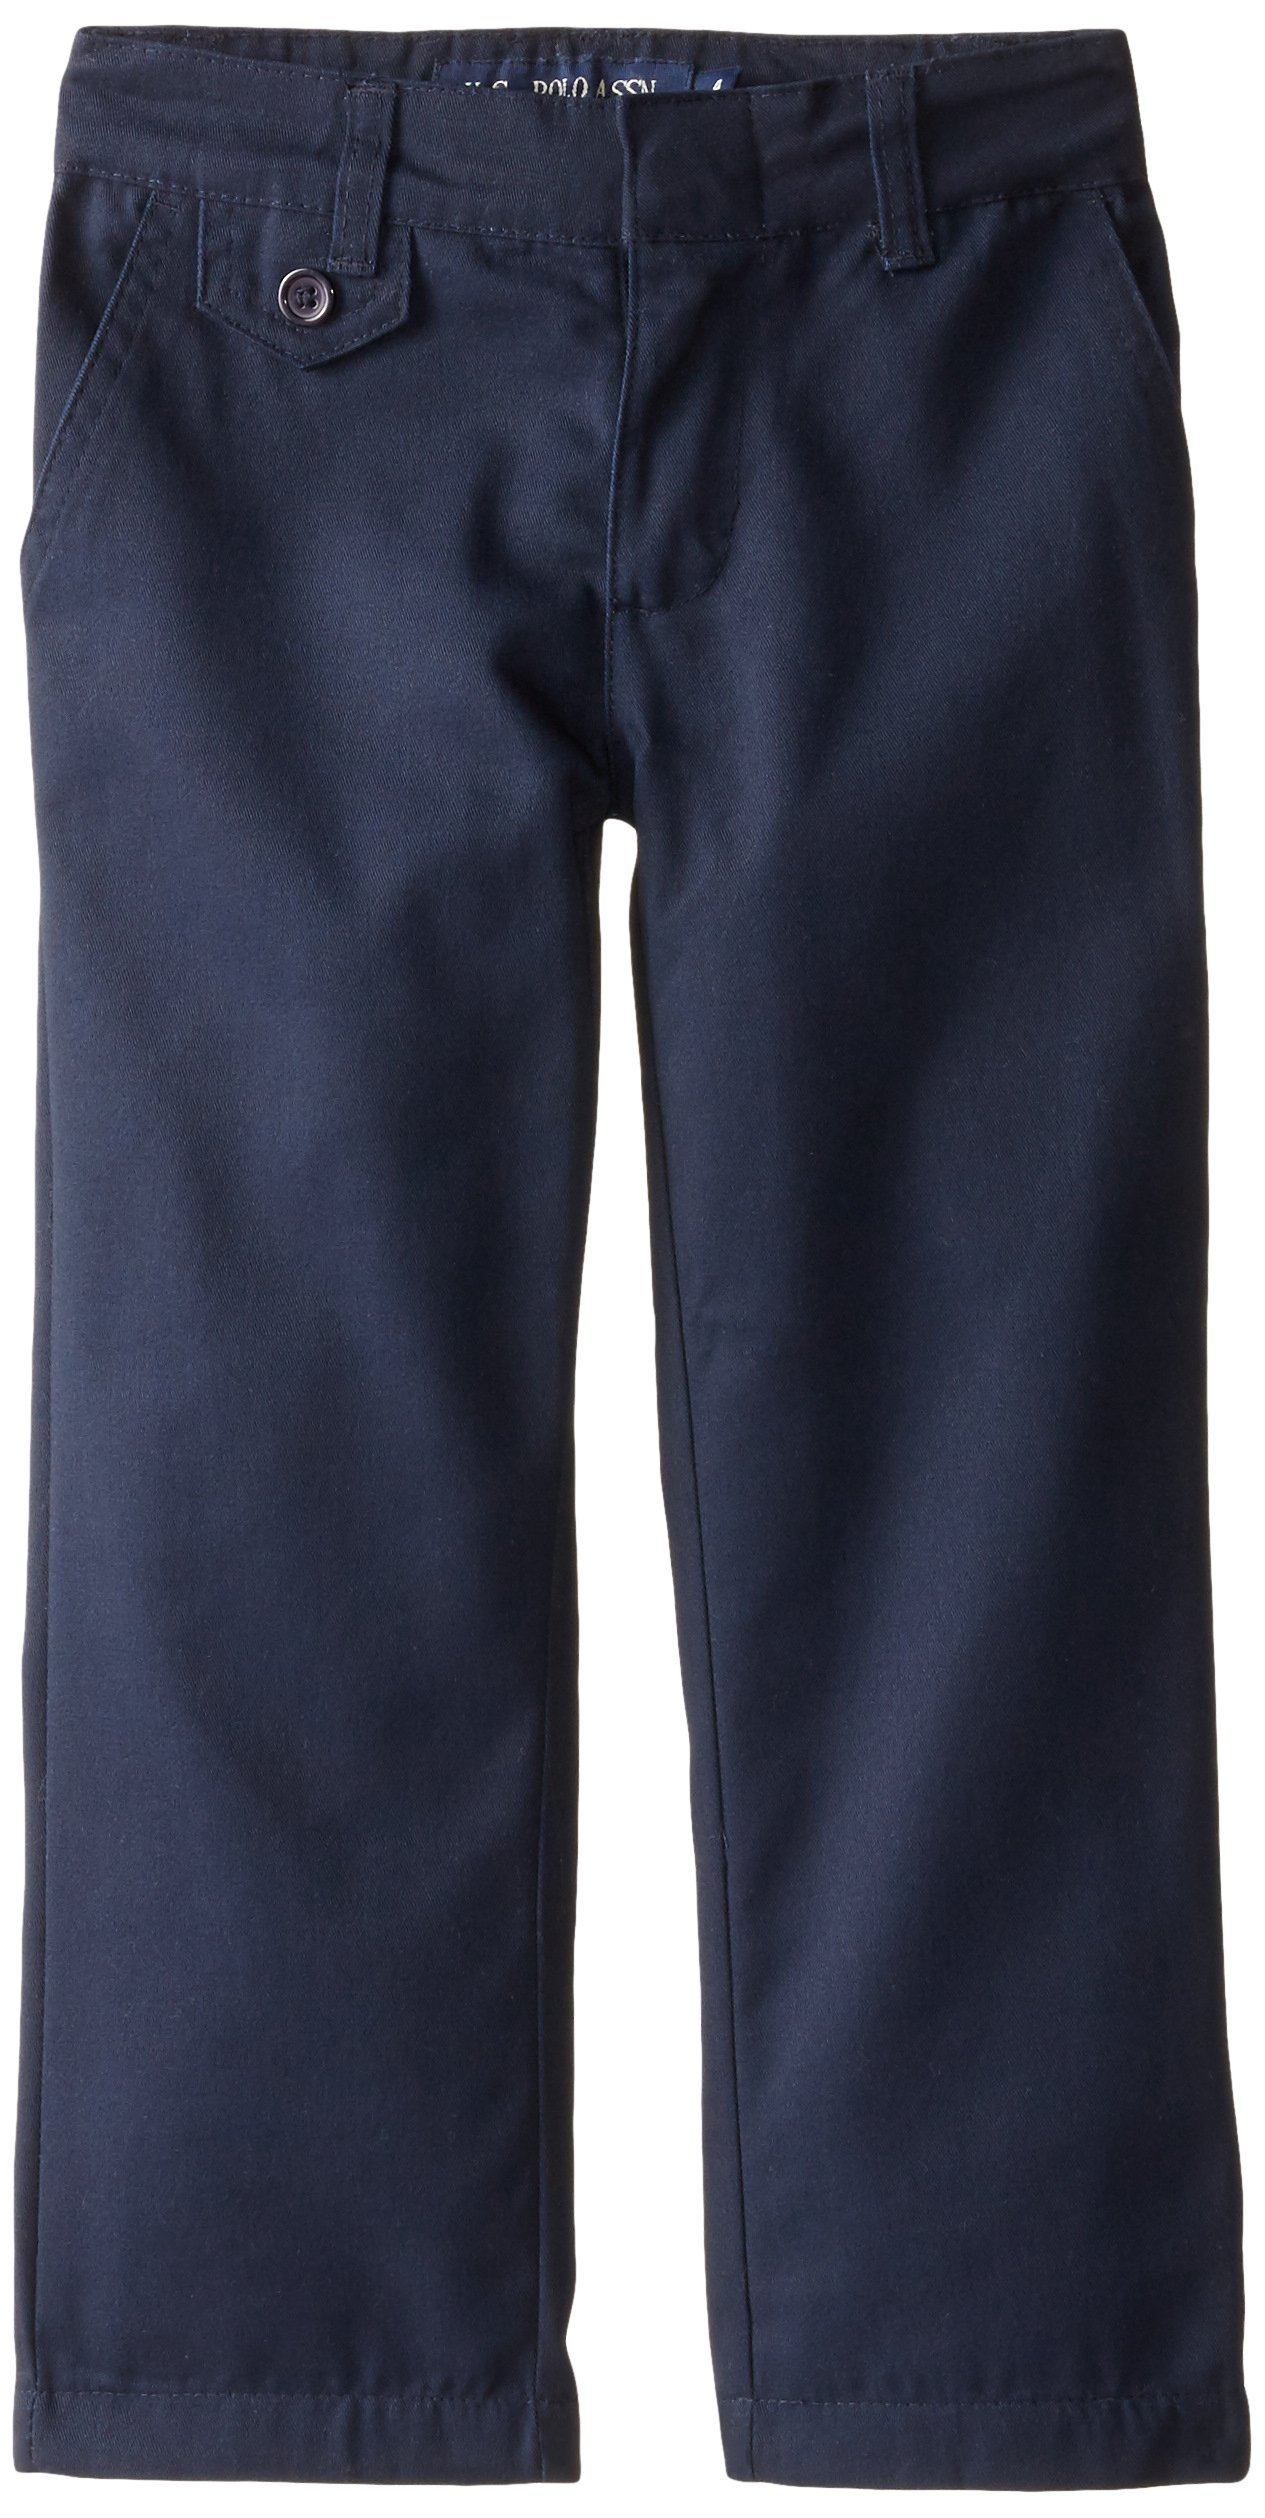 U.S. Polo Assn. Little Girls' Twill Pant (More Styles Available), Navy-YHKD, 6